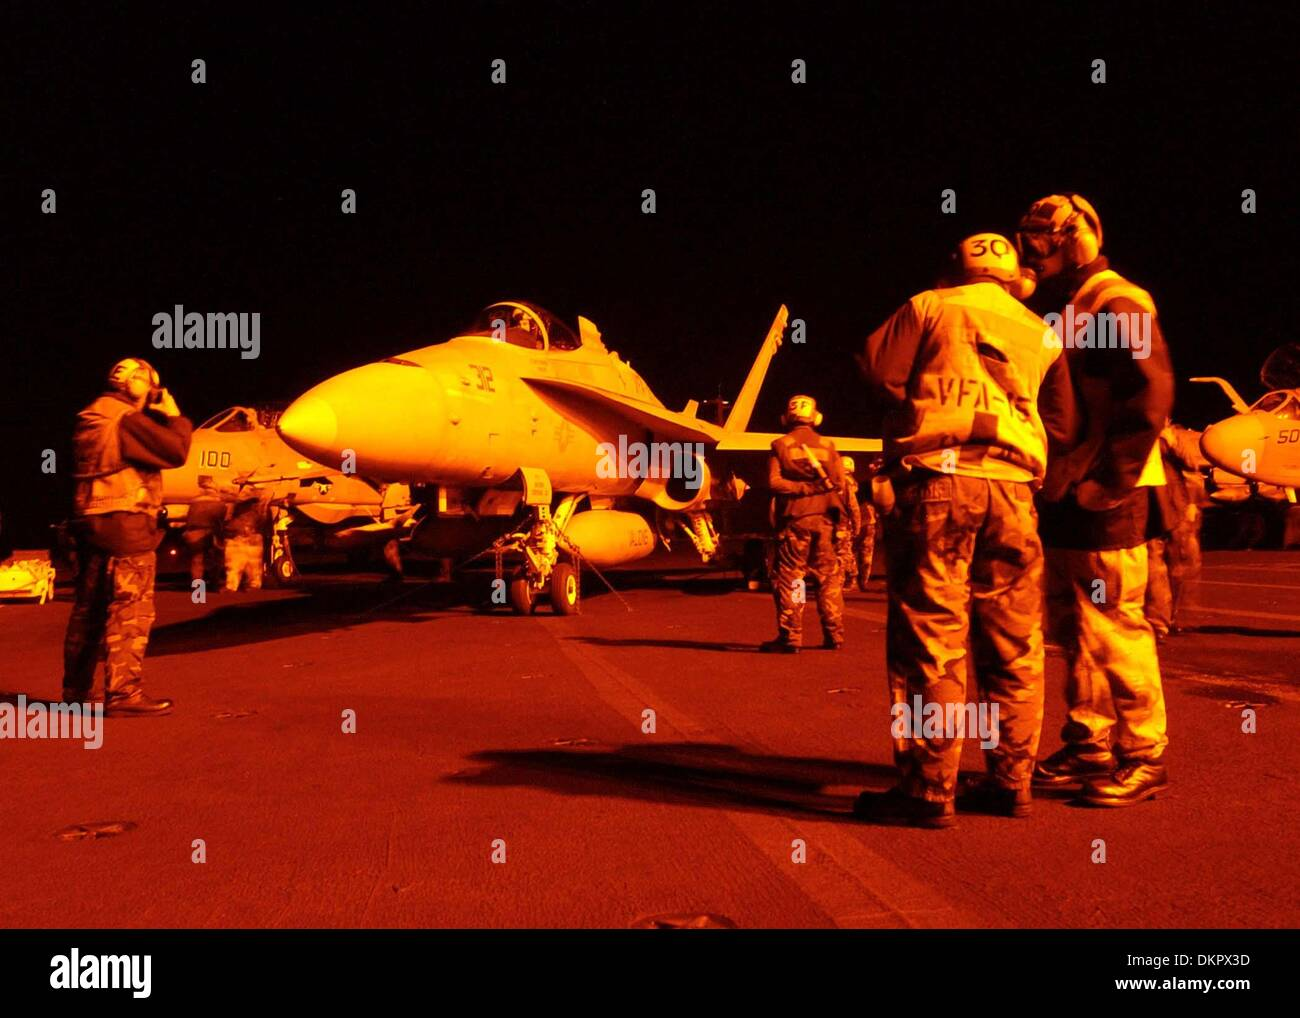 Nov. 23, 2002 - An F/A-18 Hornet from VFA-15 ''Valions'' waits to be guided into launch position on the flight deck of USS Theodore Roosevelt (CVN 71) during night flight operations on April 2, 2003. The Valions are part of Carrier Airwing Eight (CVW 8) currently deployed with the nuclear powered aircraft carrier in support of Operation Iraqi Freedom from the Mediterranean Sea. MCN - Stock Image